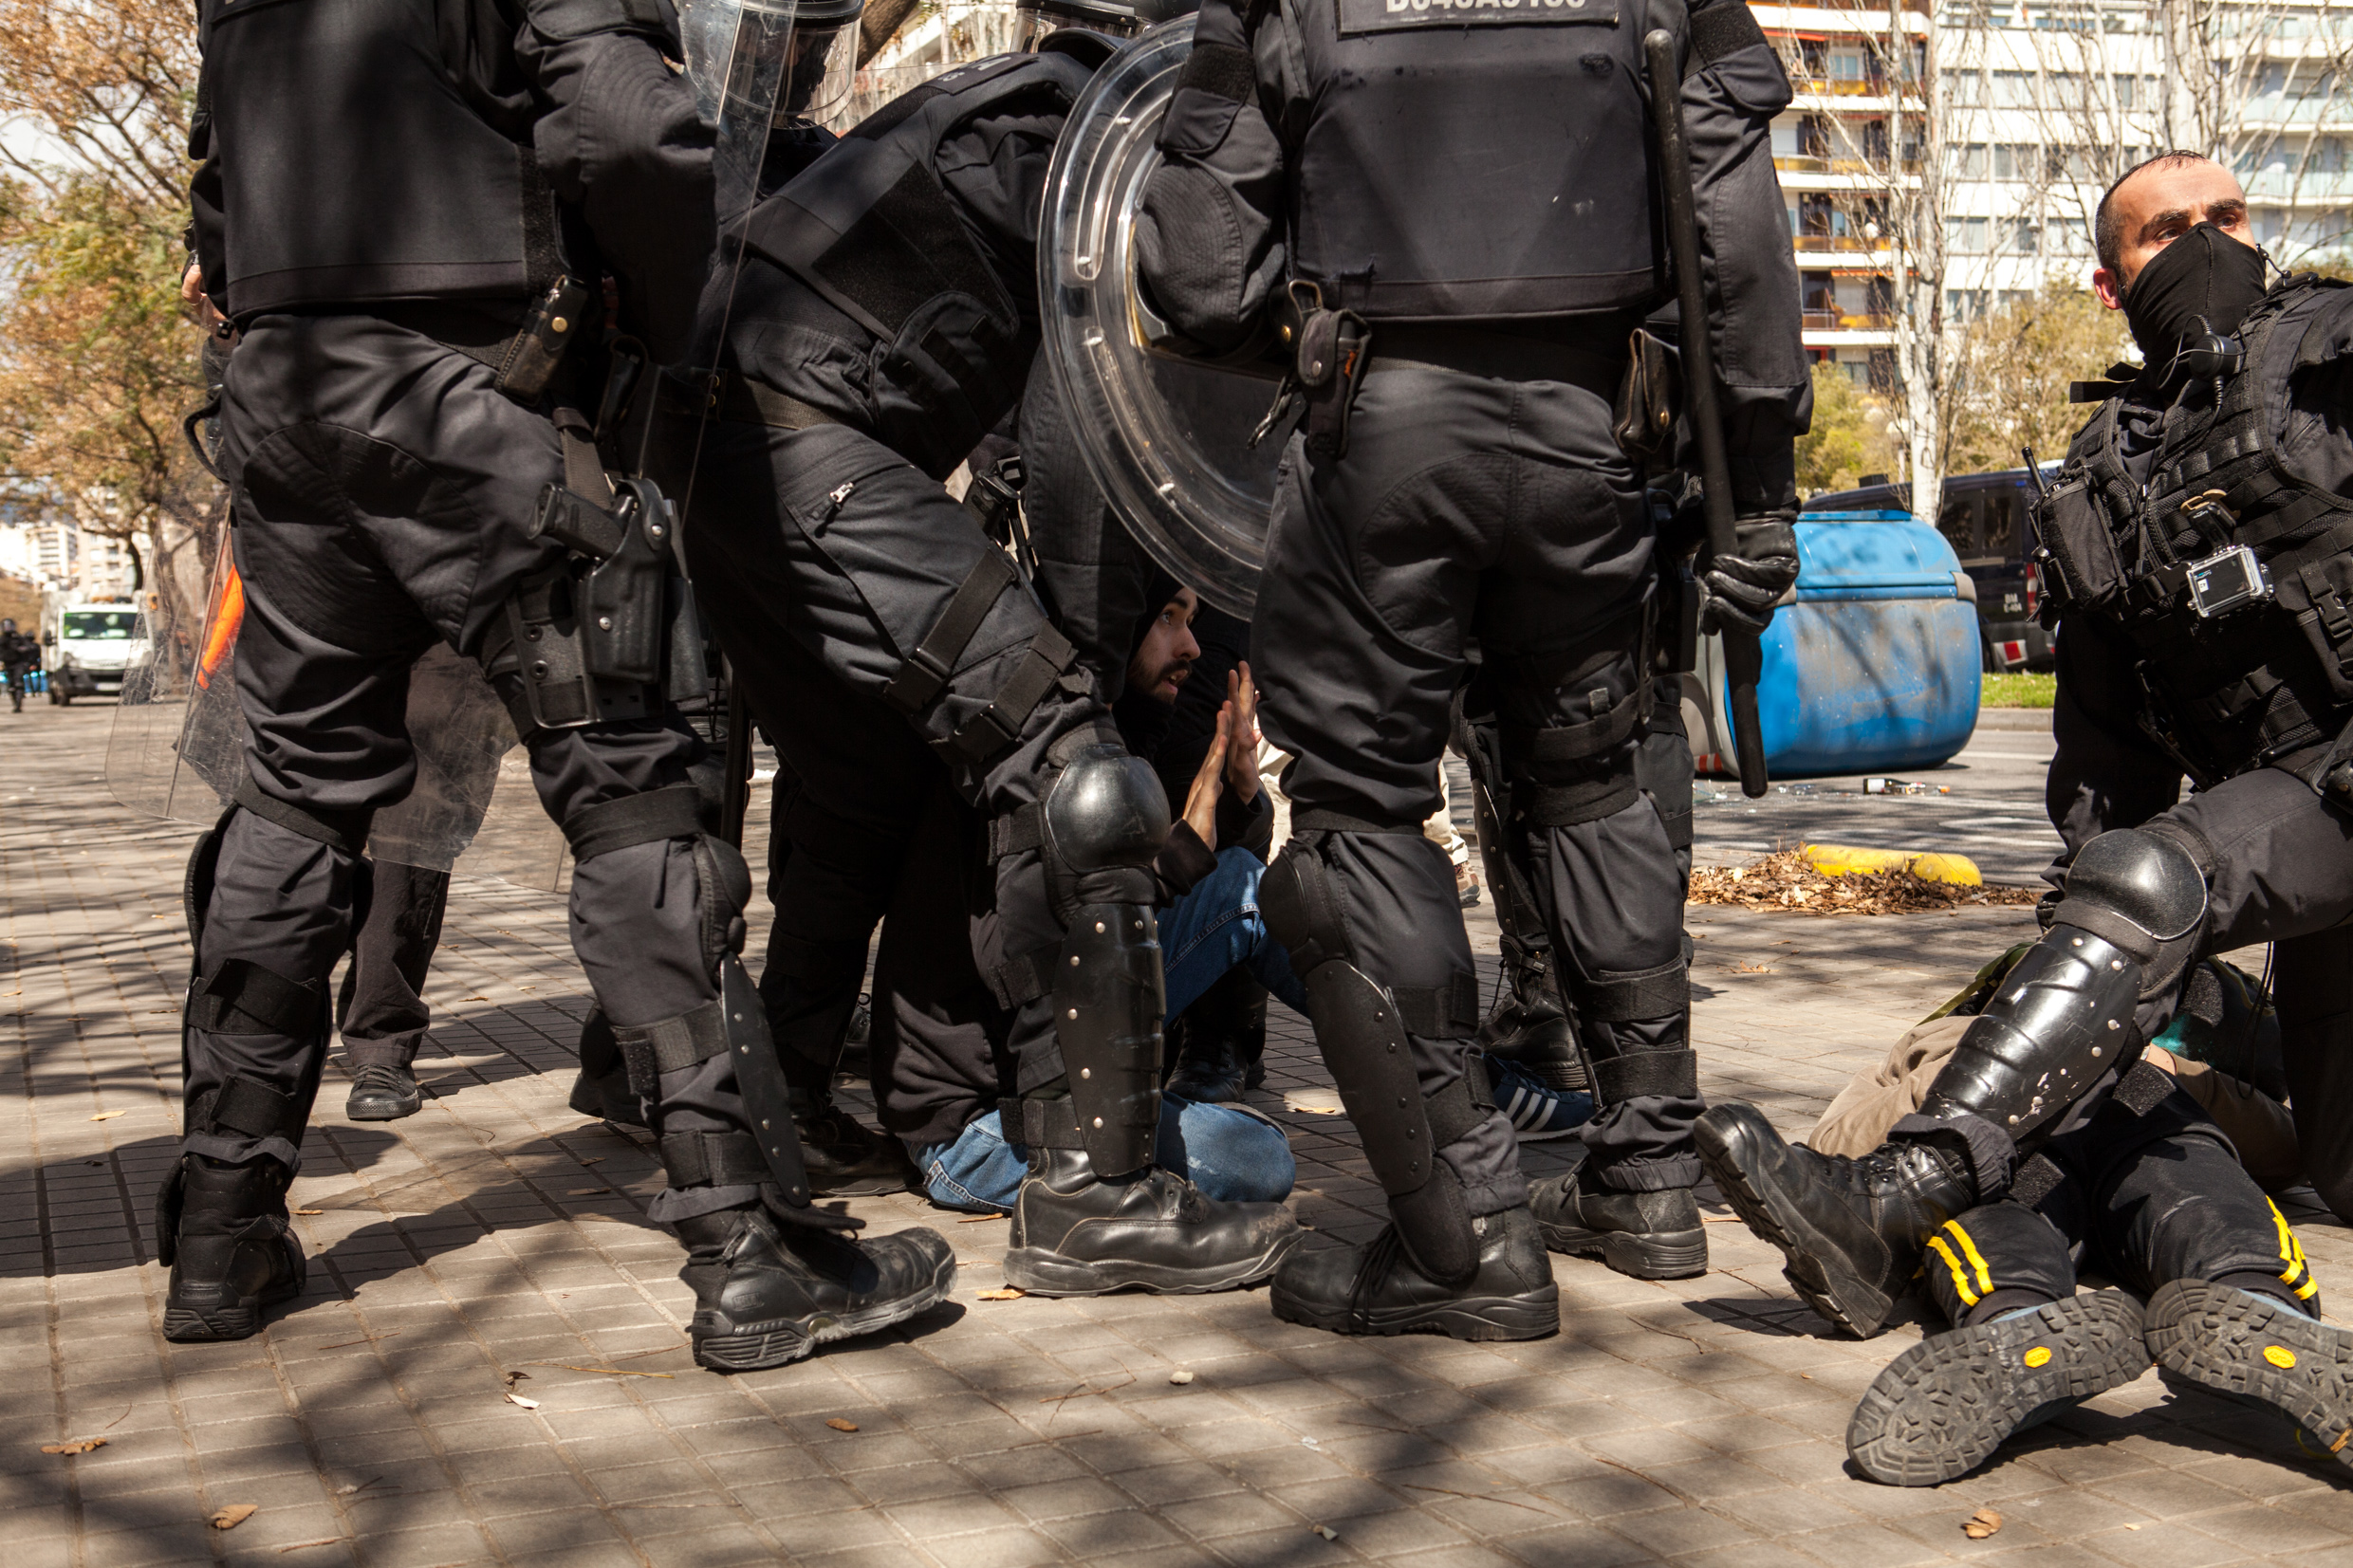 Protestres bocked by catalan police